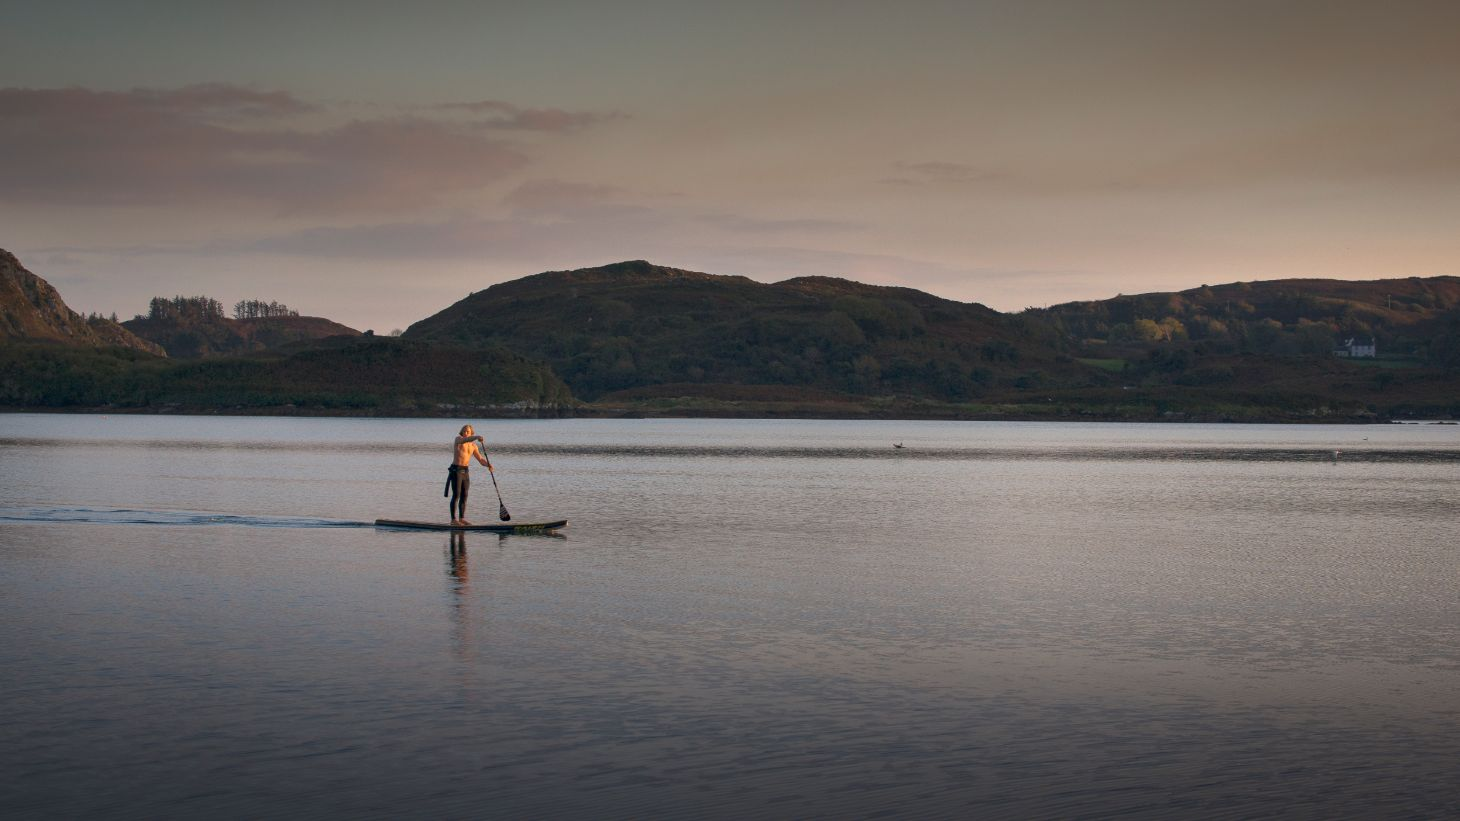 Paddle across Lough Hyne long after the sun has set.